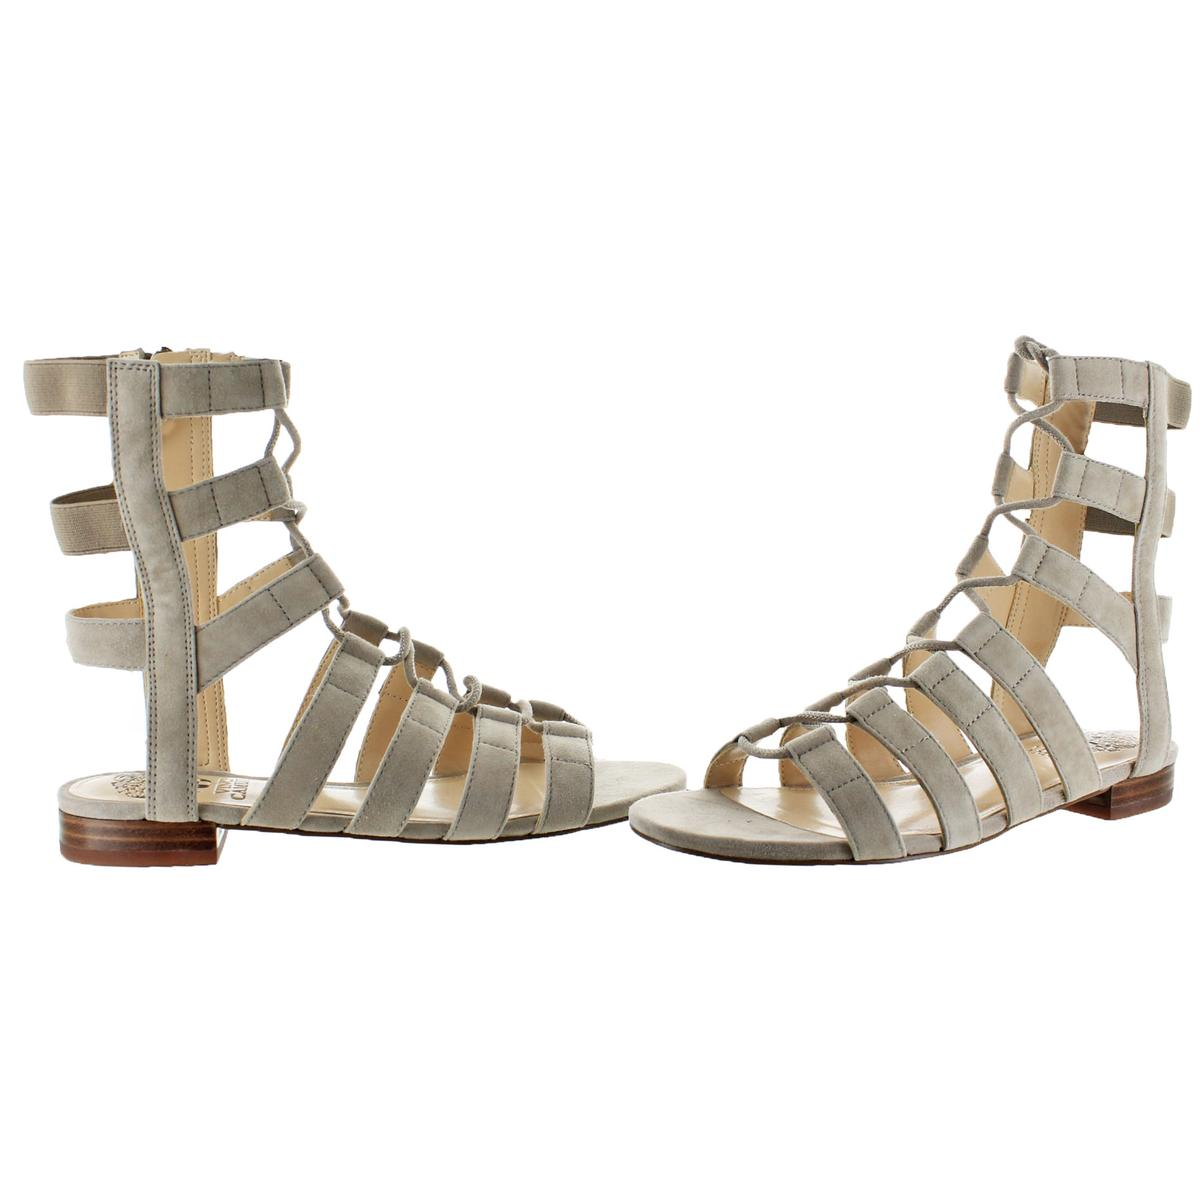 Vince-Camuto-Helayn-Women-039-s-Suede-Open-Toe-Ghillie-Caged-Sandals-Shoes thumbnail 7